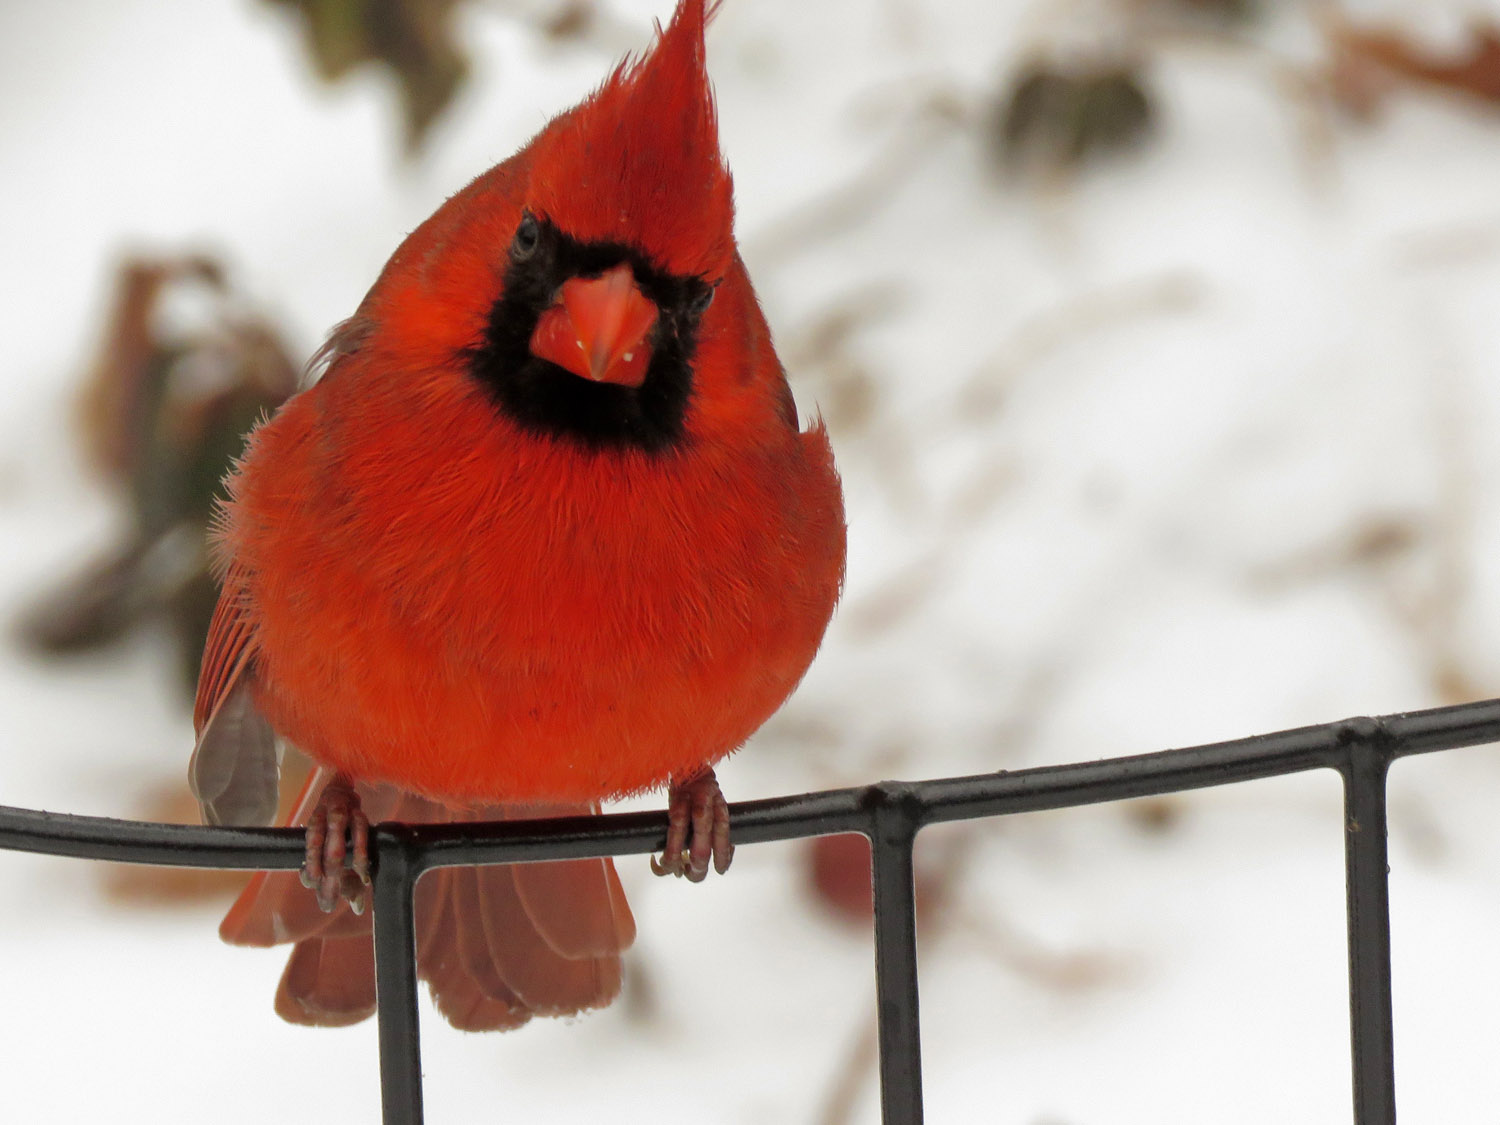 Snow Bird: Male northern cardinal waiting for sunflower seeds during a snowstorm, the Pond, Central Park, February 12, 2019